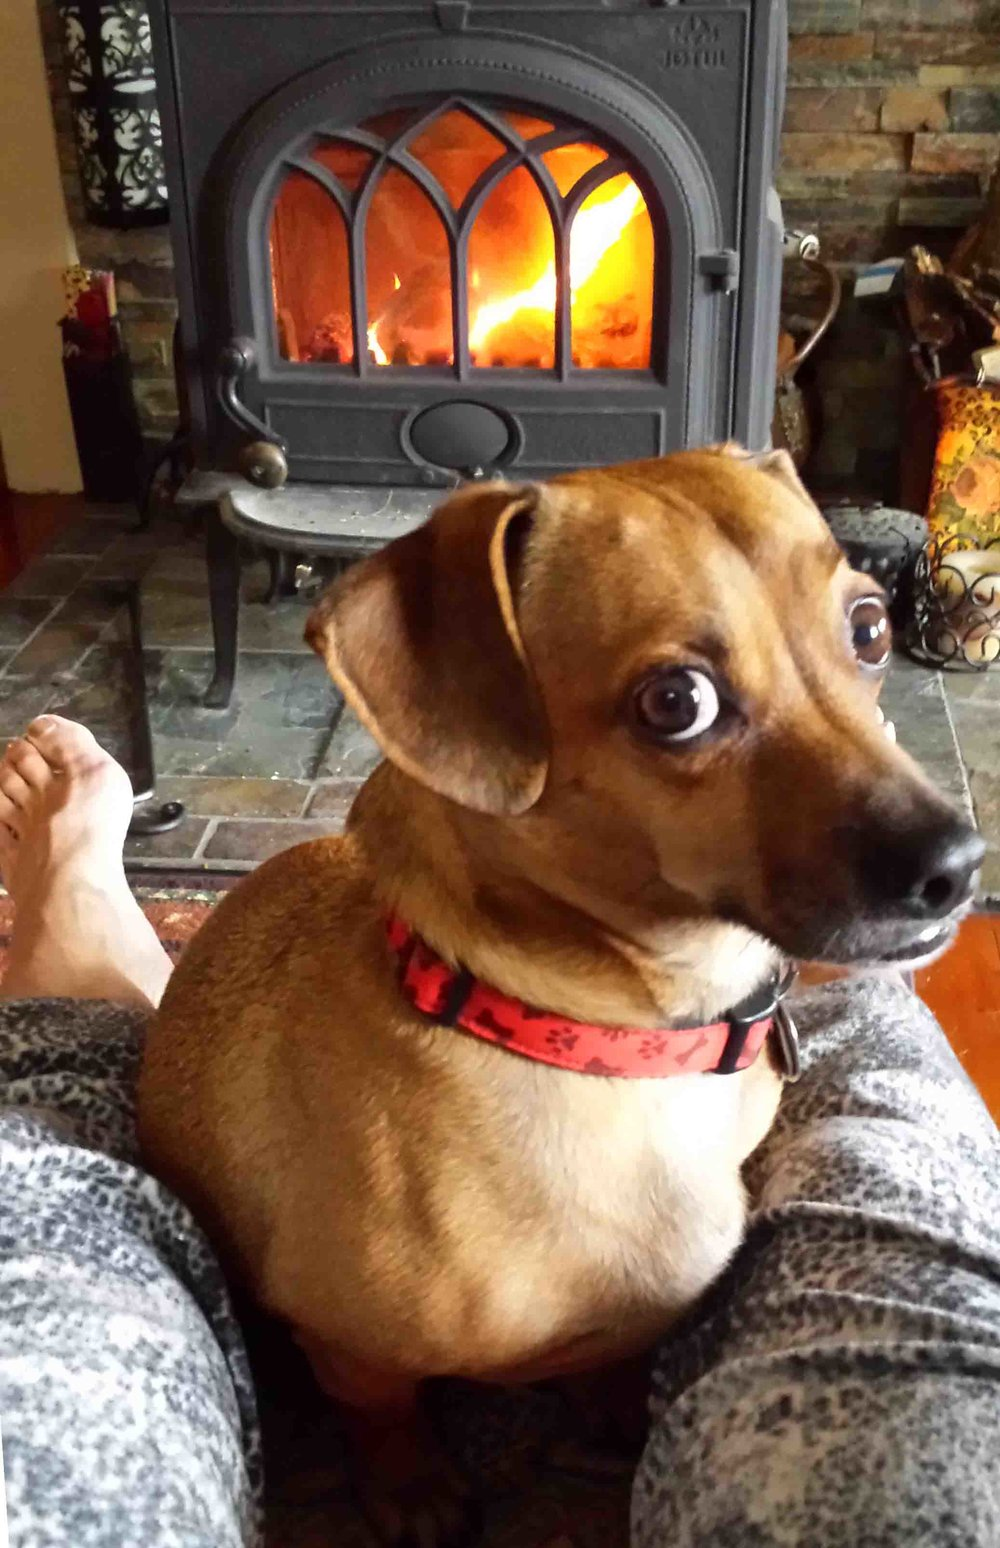 Doodle and I love fireside fall mornings.                  Photo: (c) Barb Ayers, DogDiary.org